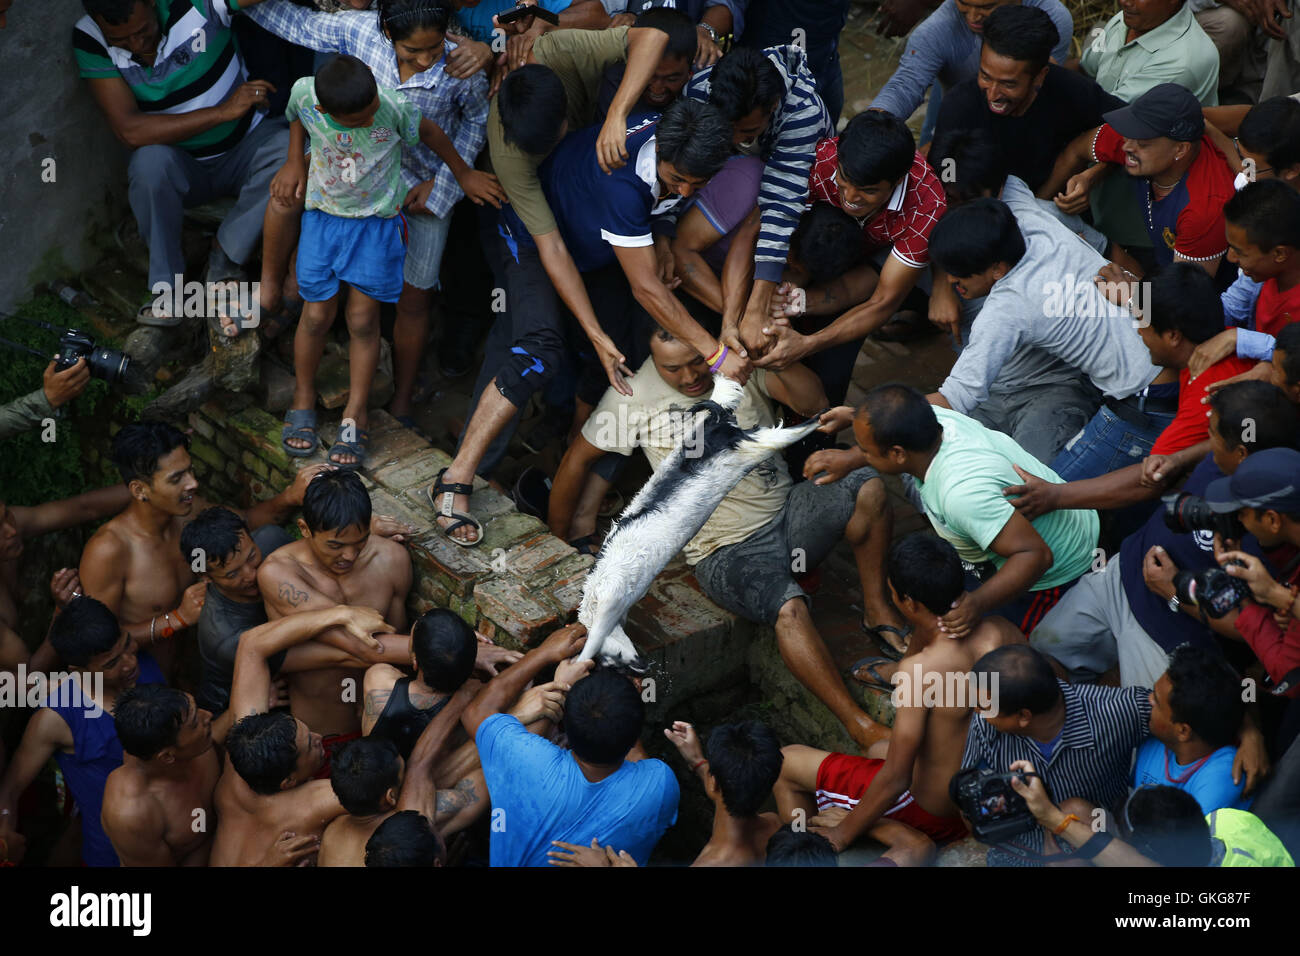 Lalitpur, Nepal. 20th Aug, 2016. Nepalese revellers compete to retrieve a goat at sacred Deu pond during Deopokhari - Stock Image